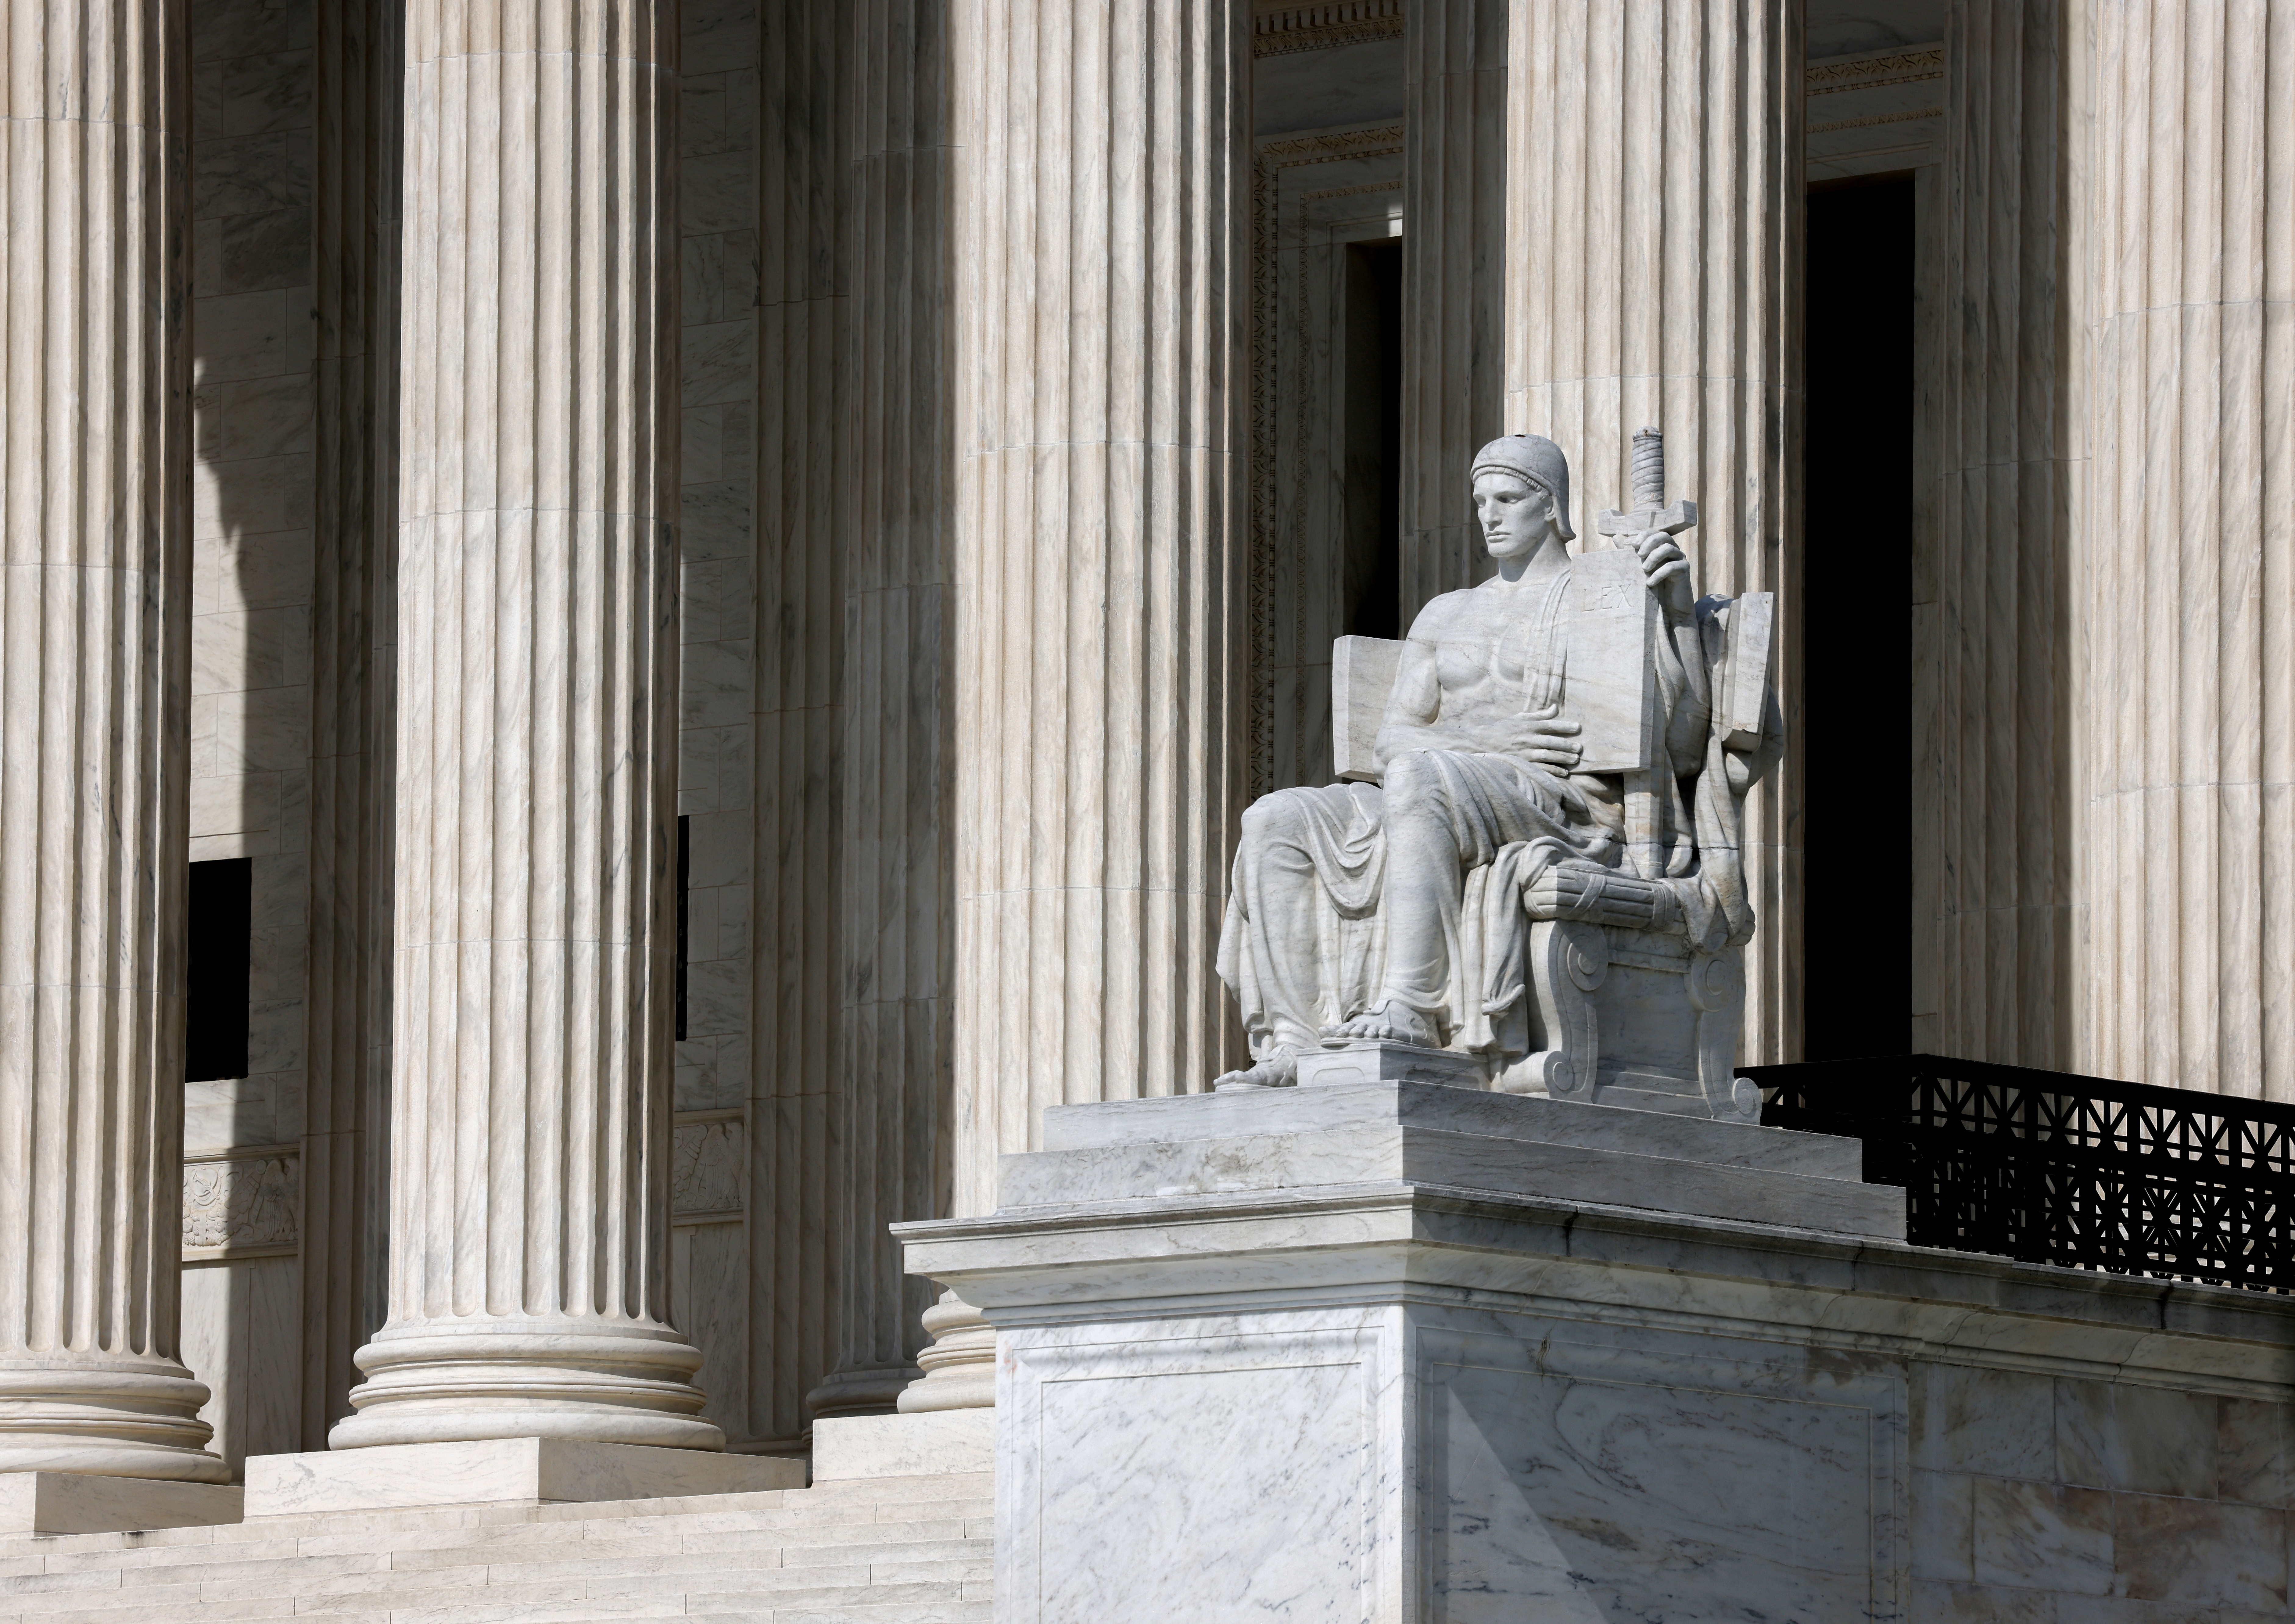 The Authority of Law statue outside the United States Supreme Court in Washington, U.S., May 17, 2021. REUTERS/Evelyn Hockstein/File Photo